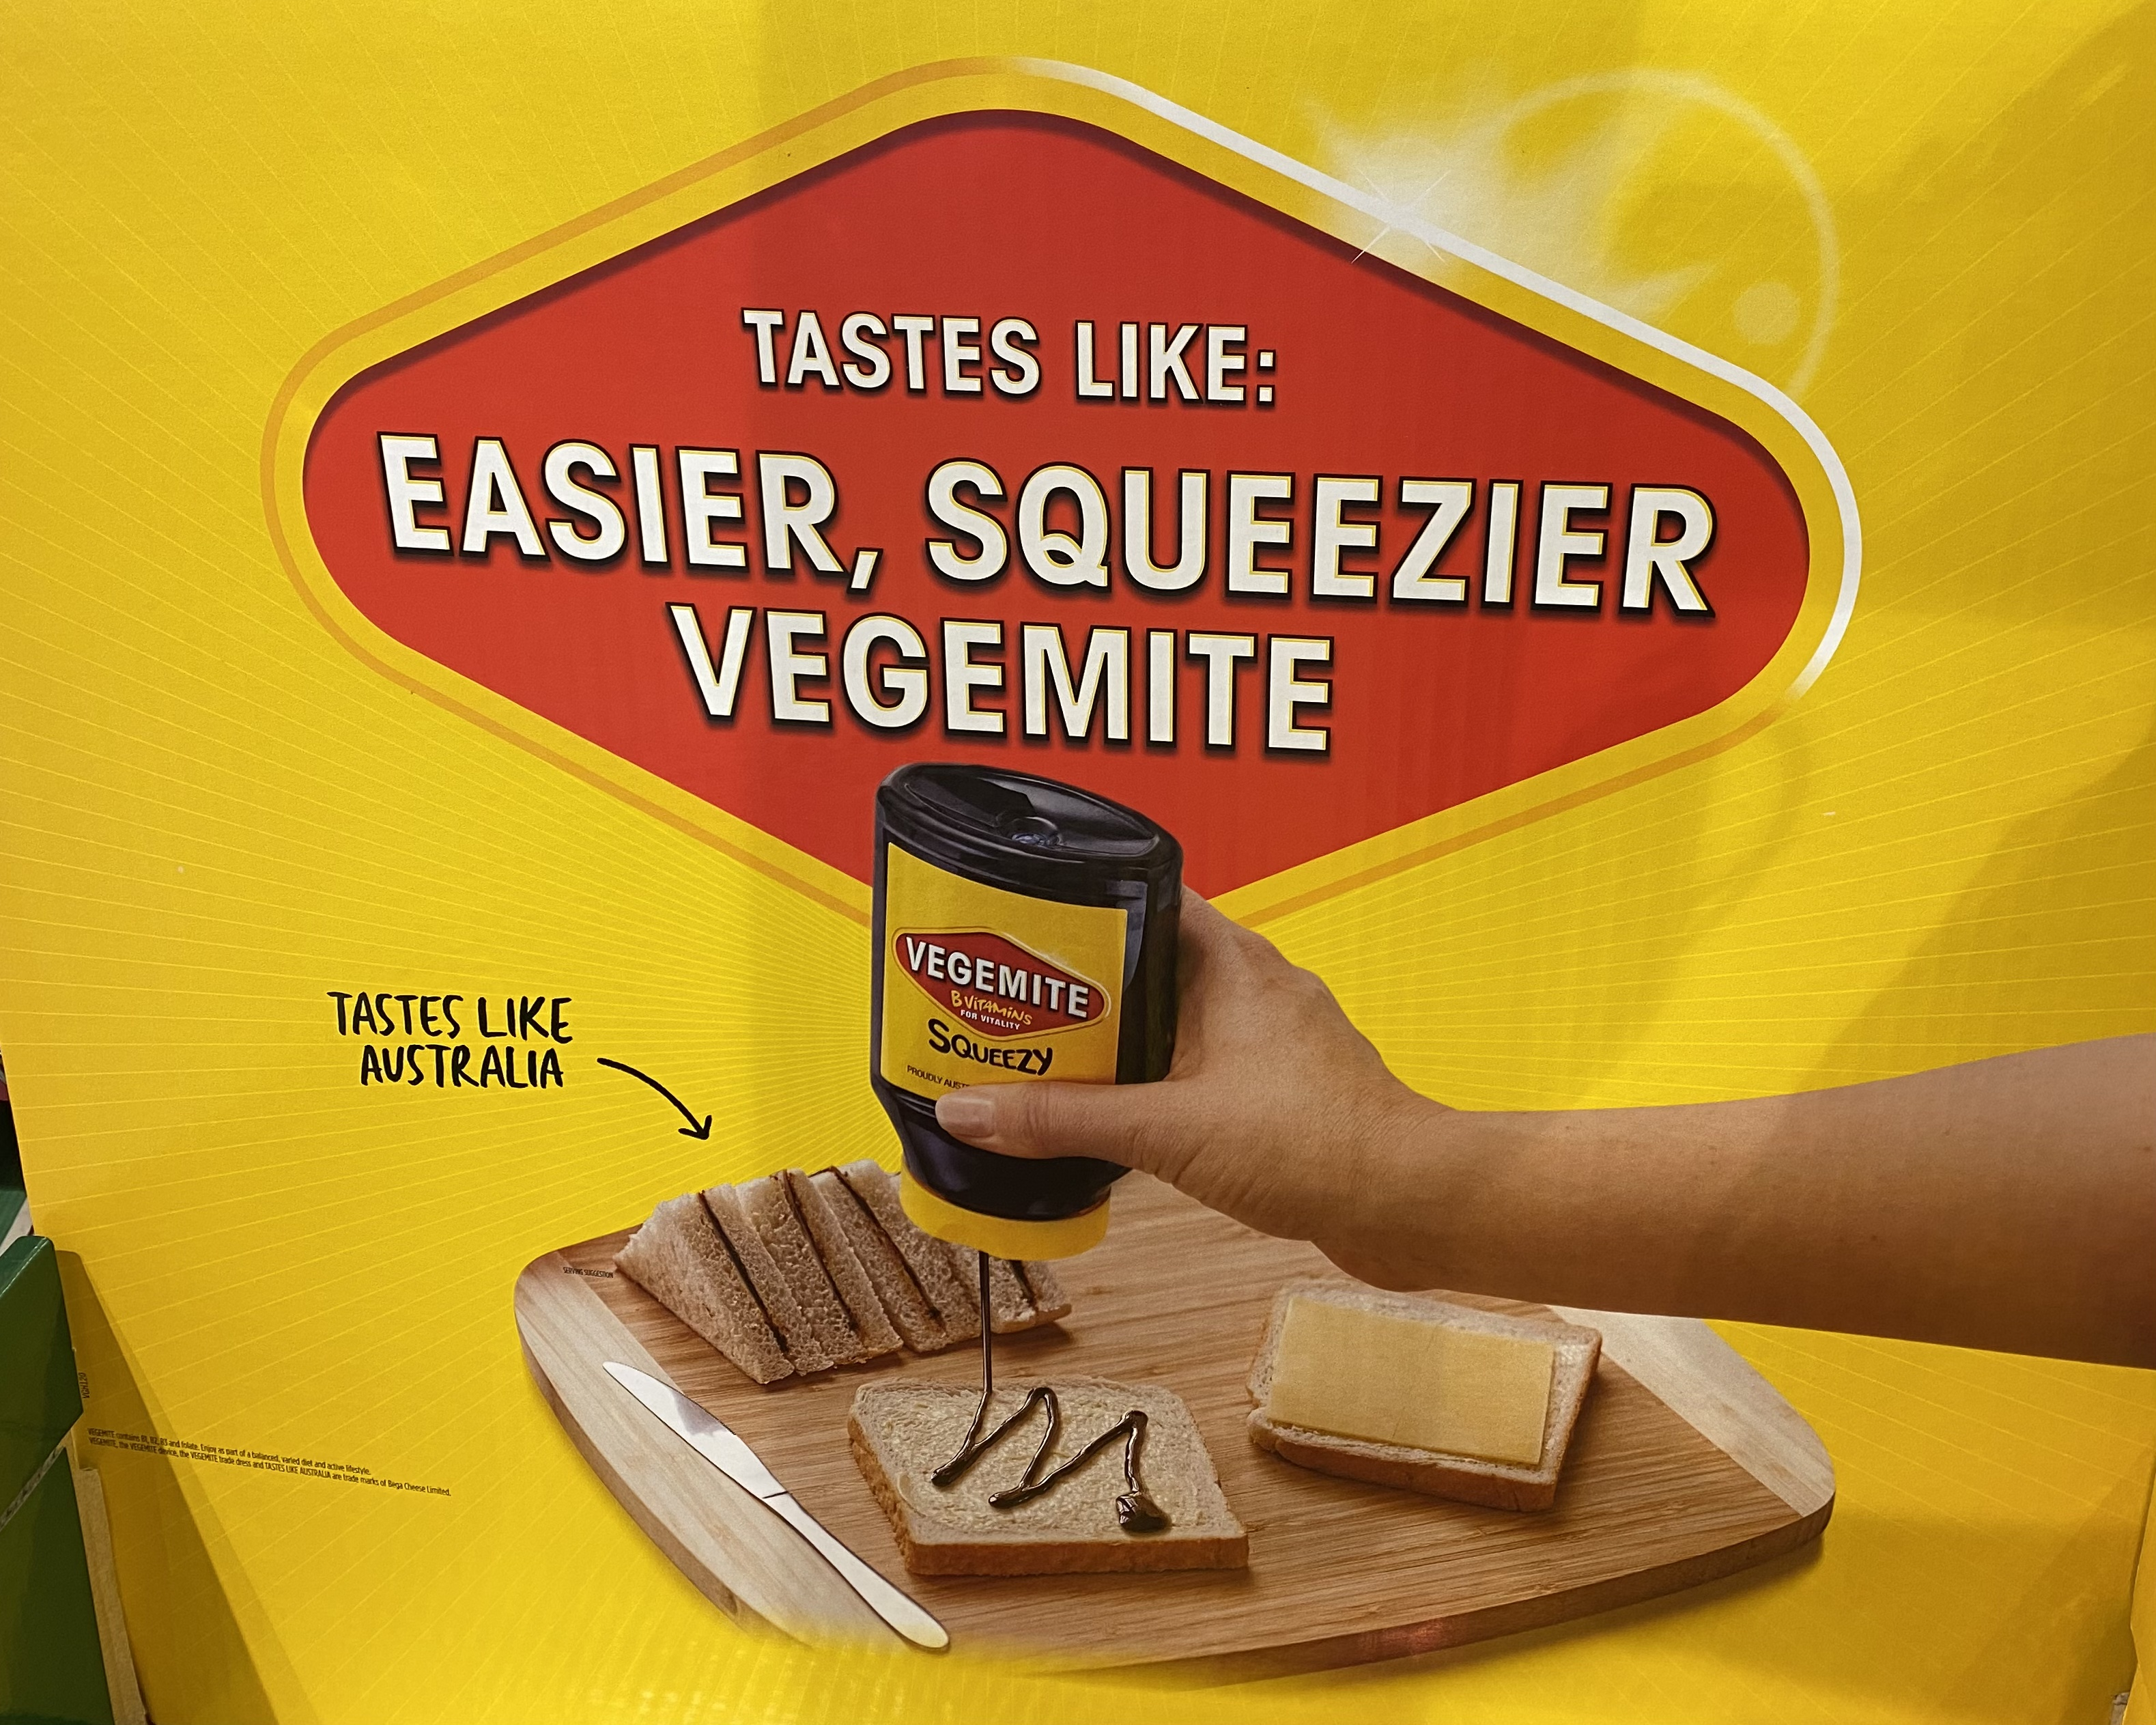 An ad that shows a hand squeezing Vegemite out of a bottle onto bread, with the caption: 'Tastes like: easier, squeezier Vegemite (tastes like Australia)'